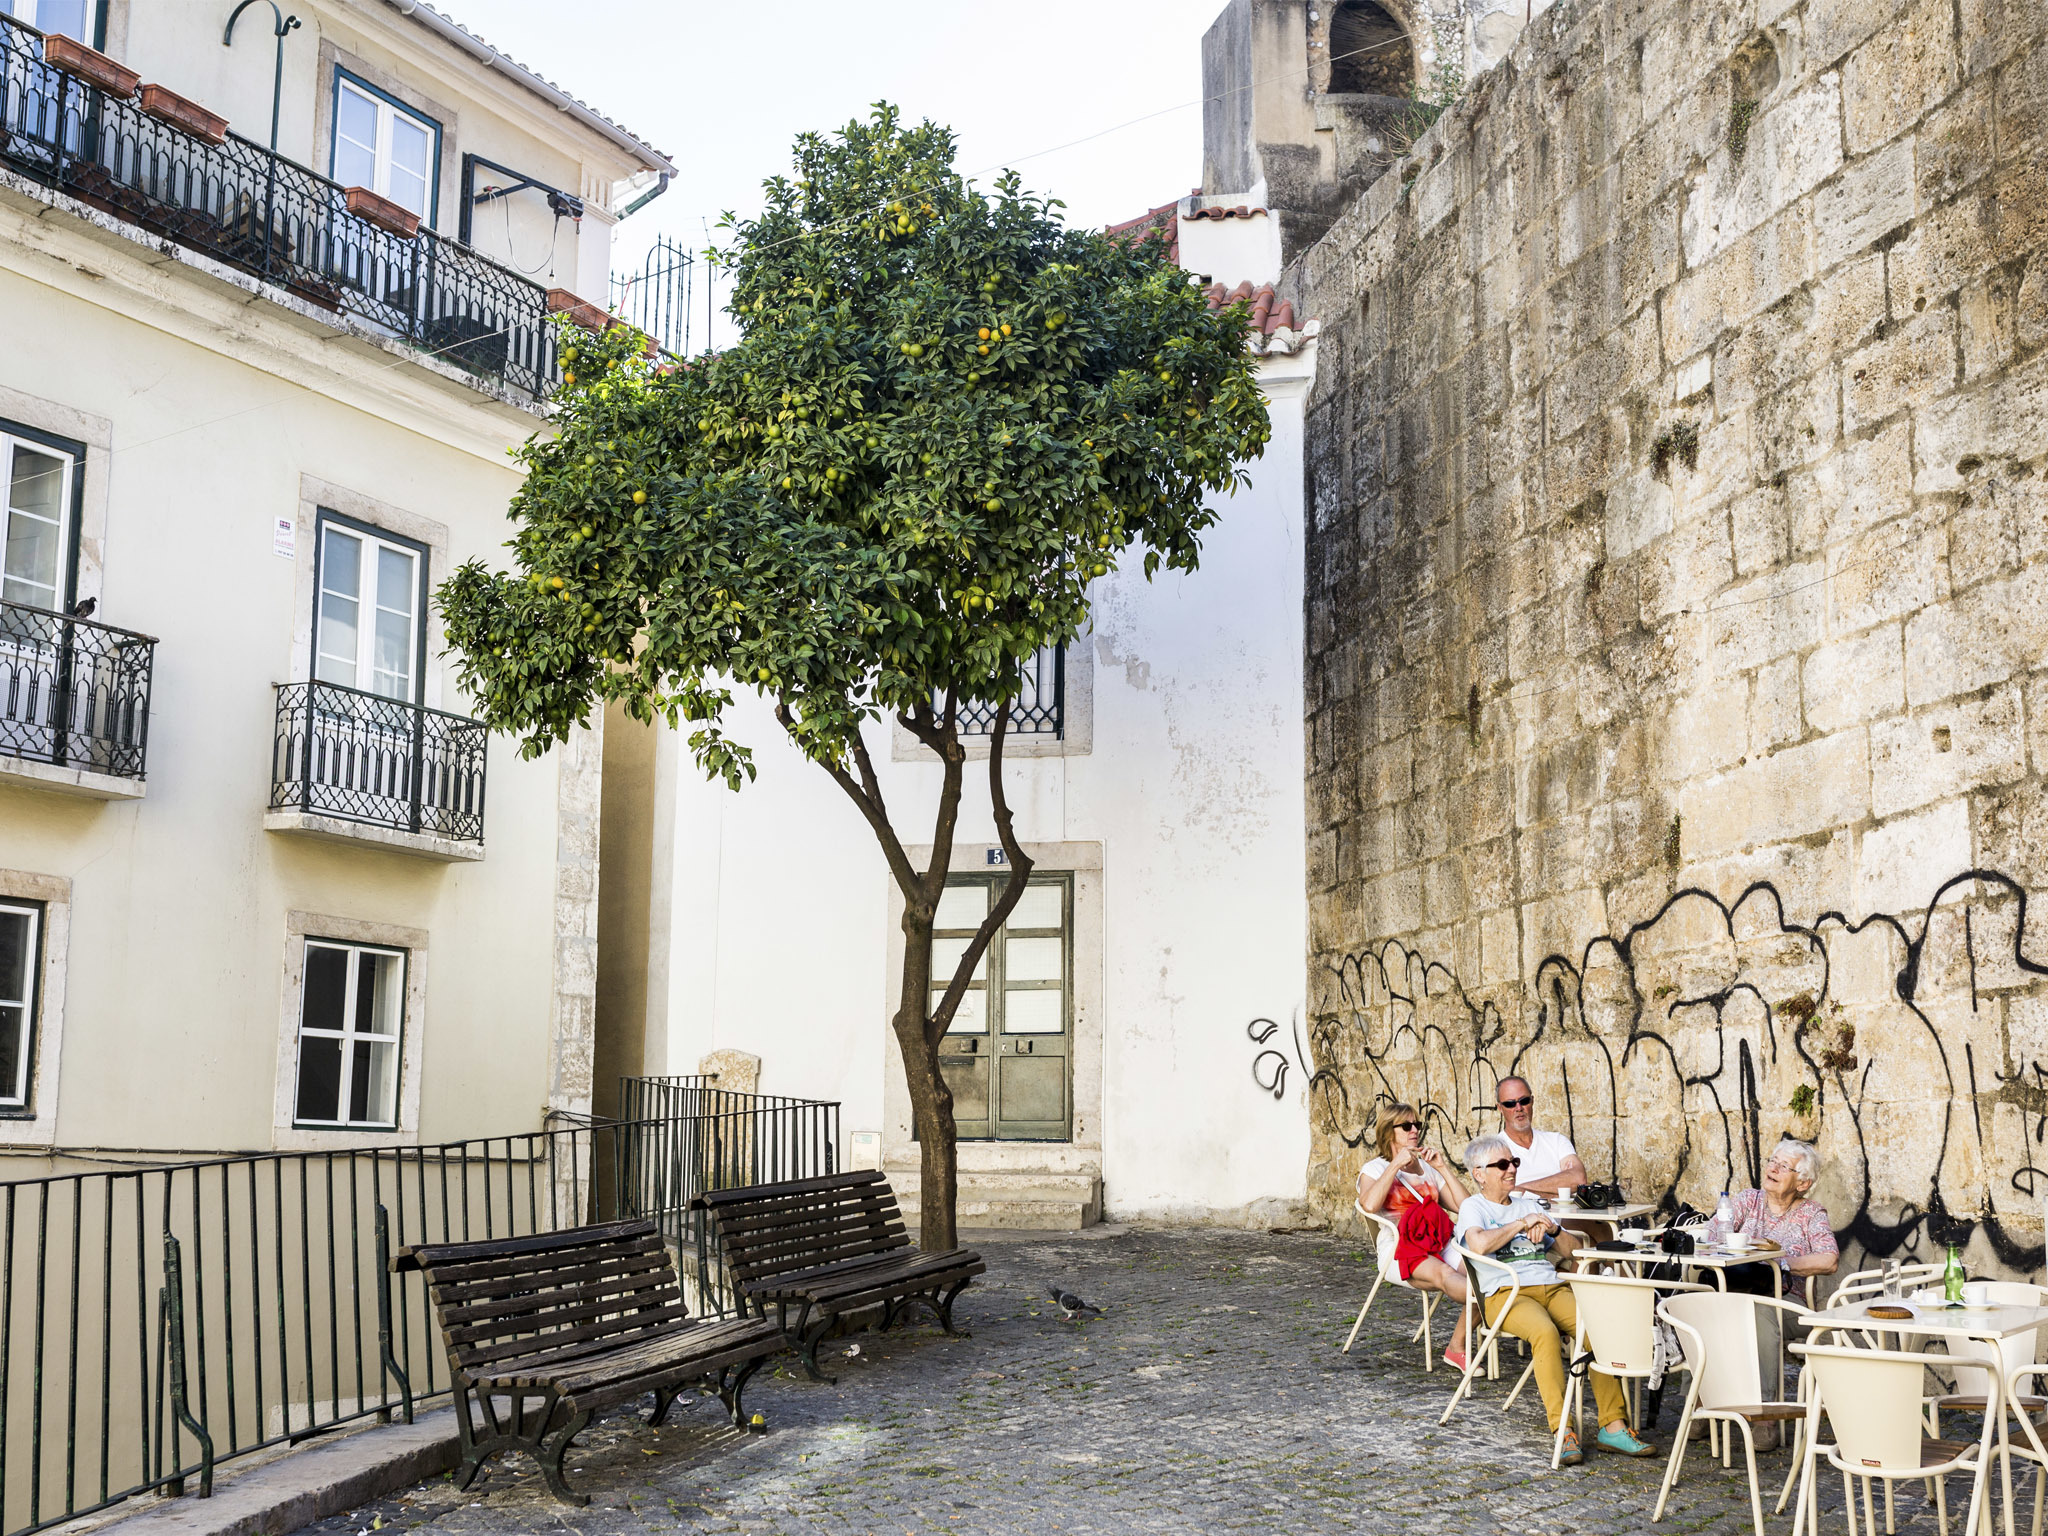 Visit Alfama, Lisbon - Top 10 Things to do in Alfama